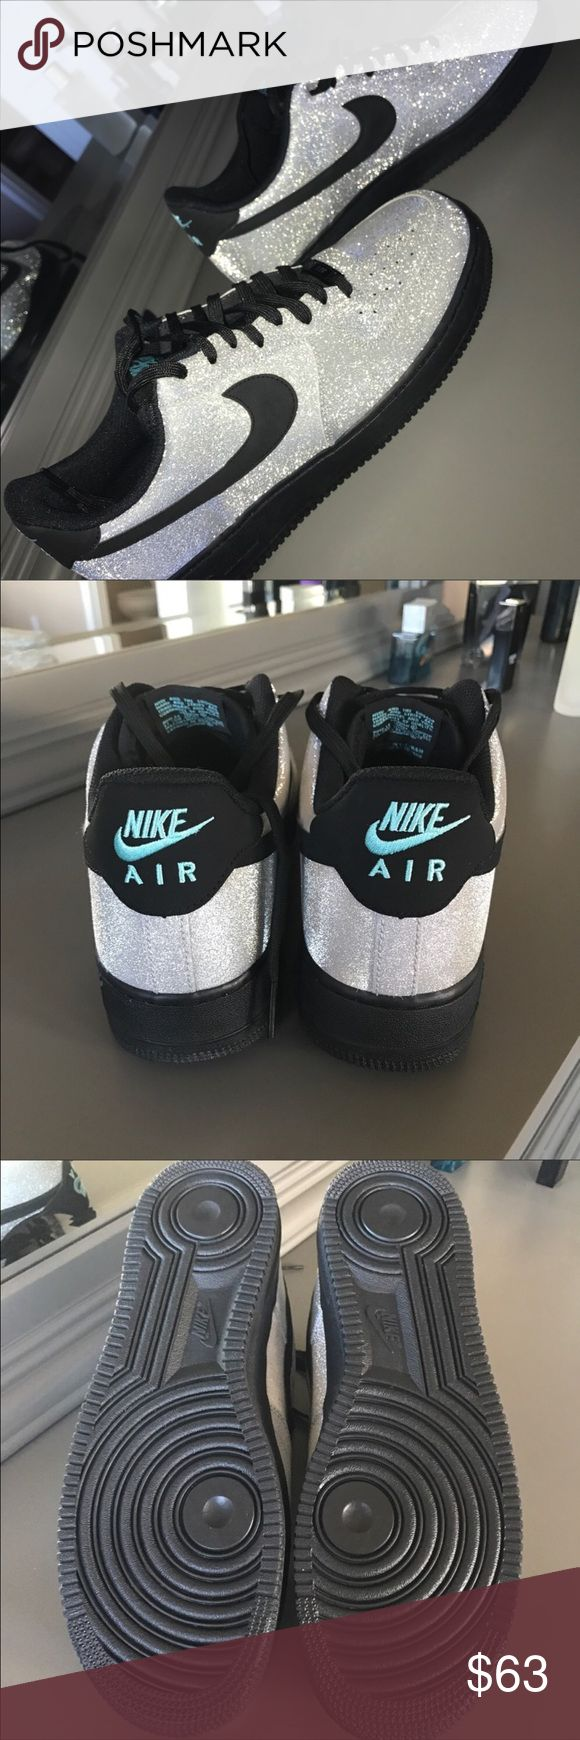 Nike Air Force One Silver glitter Nike Air Force One size 12 Brand New But no box. Nike Shoes Sneakers